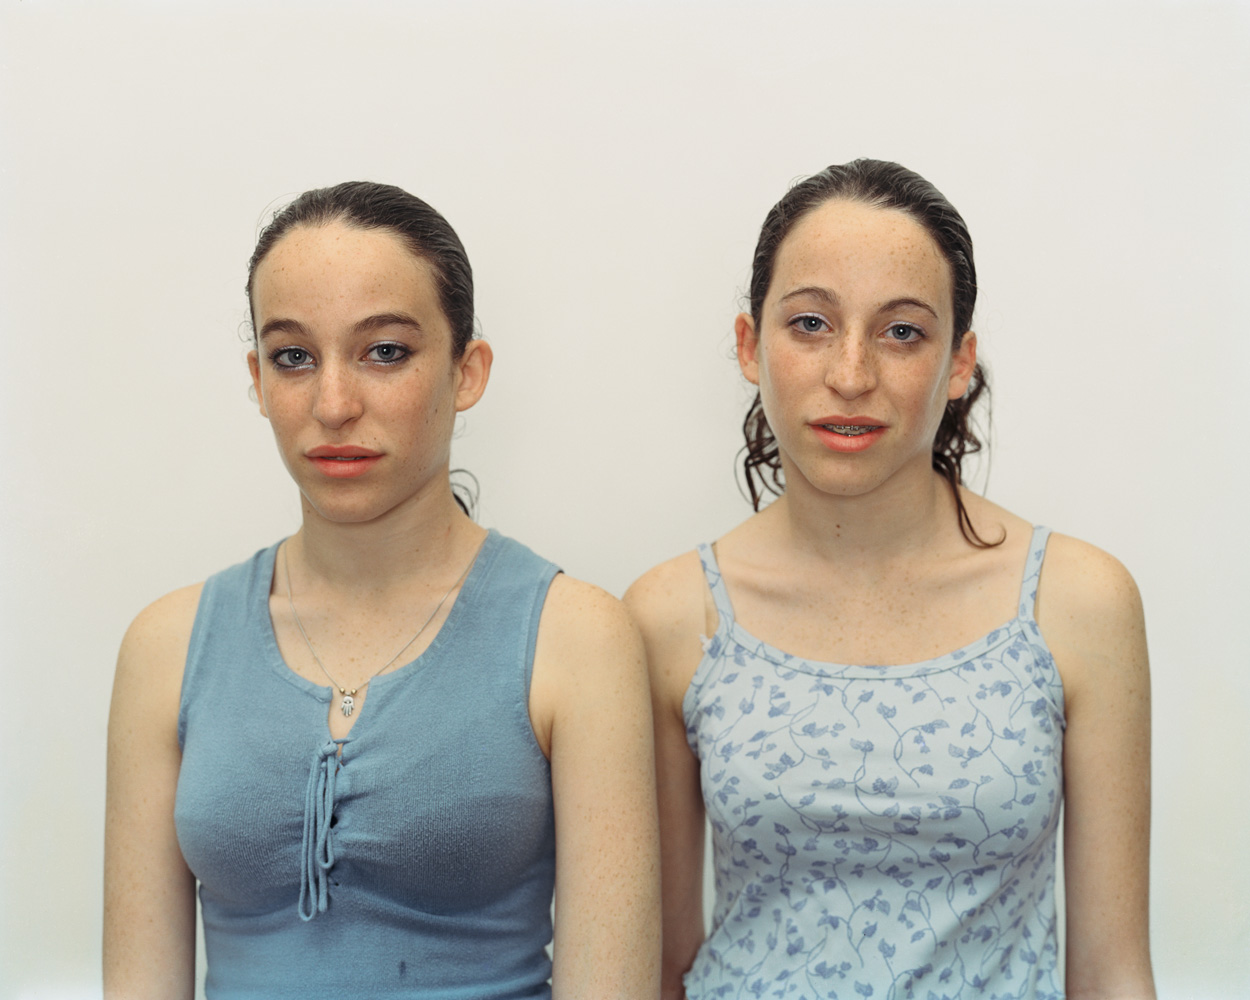 Chen and Efrat, Herzliya, Israel, March 4, 2002Dijkstra has followed a number of her young subjects over a period of years to watch them grow into themselves. One series follows the evolution of identical twin sisters.